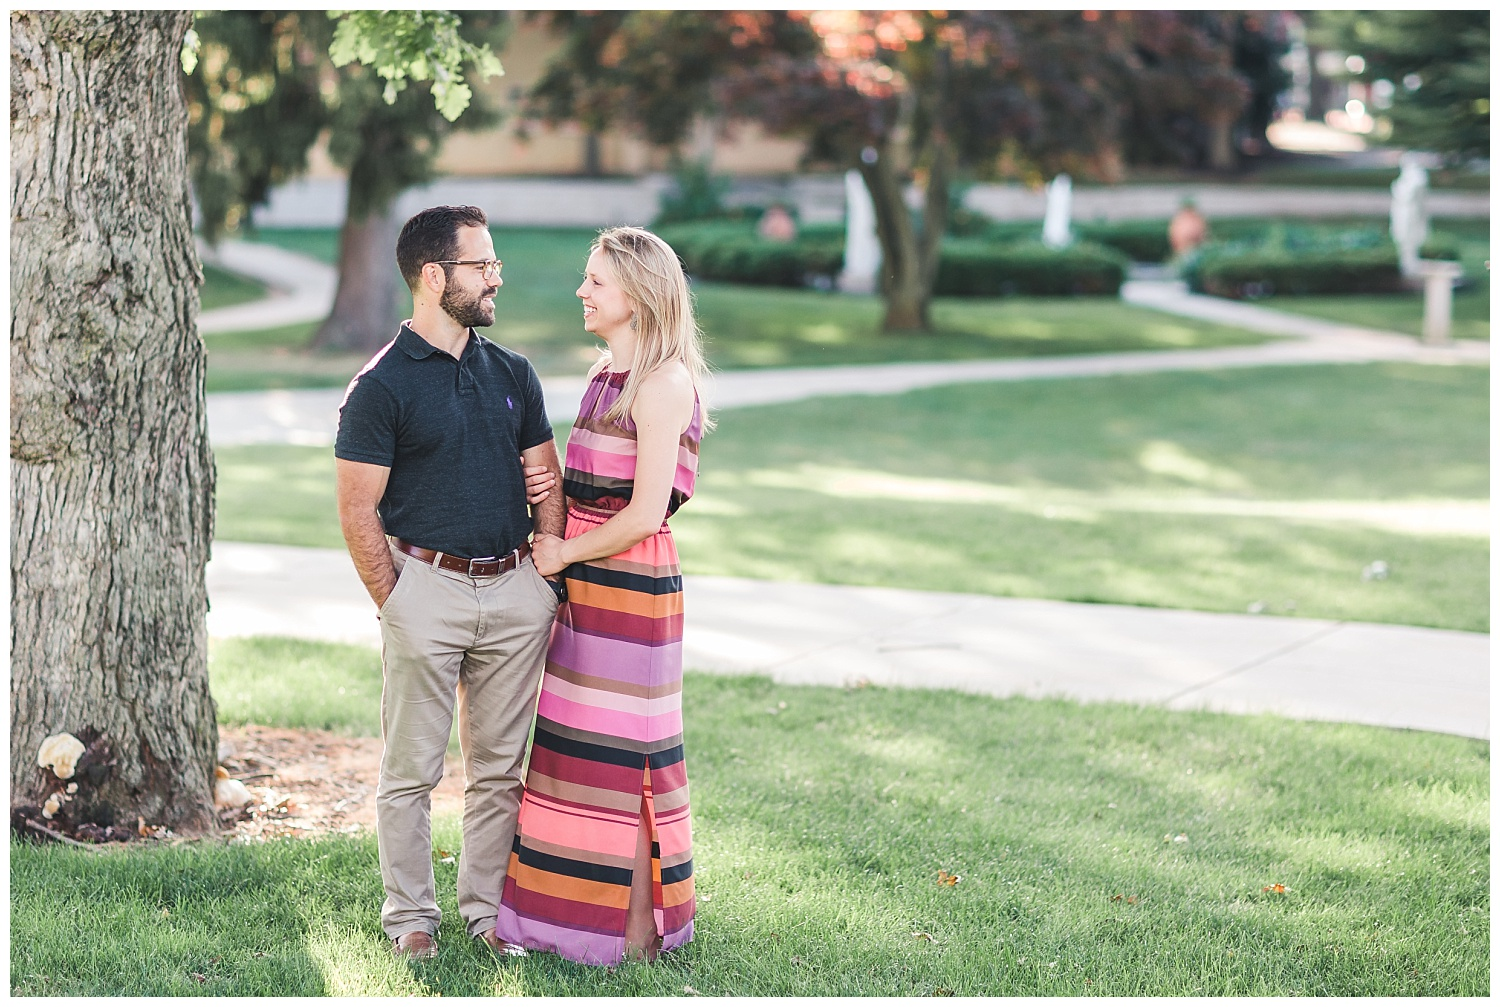 Lititz, PA Summer Engagement Session_0003.jpg